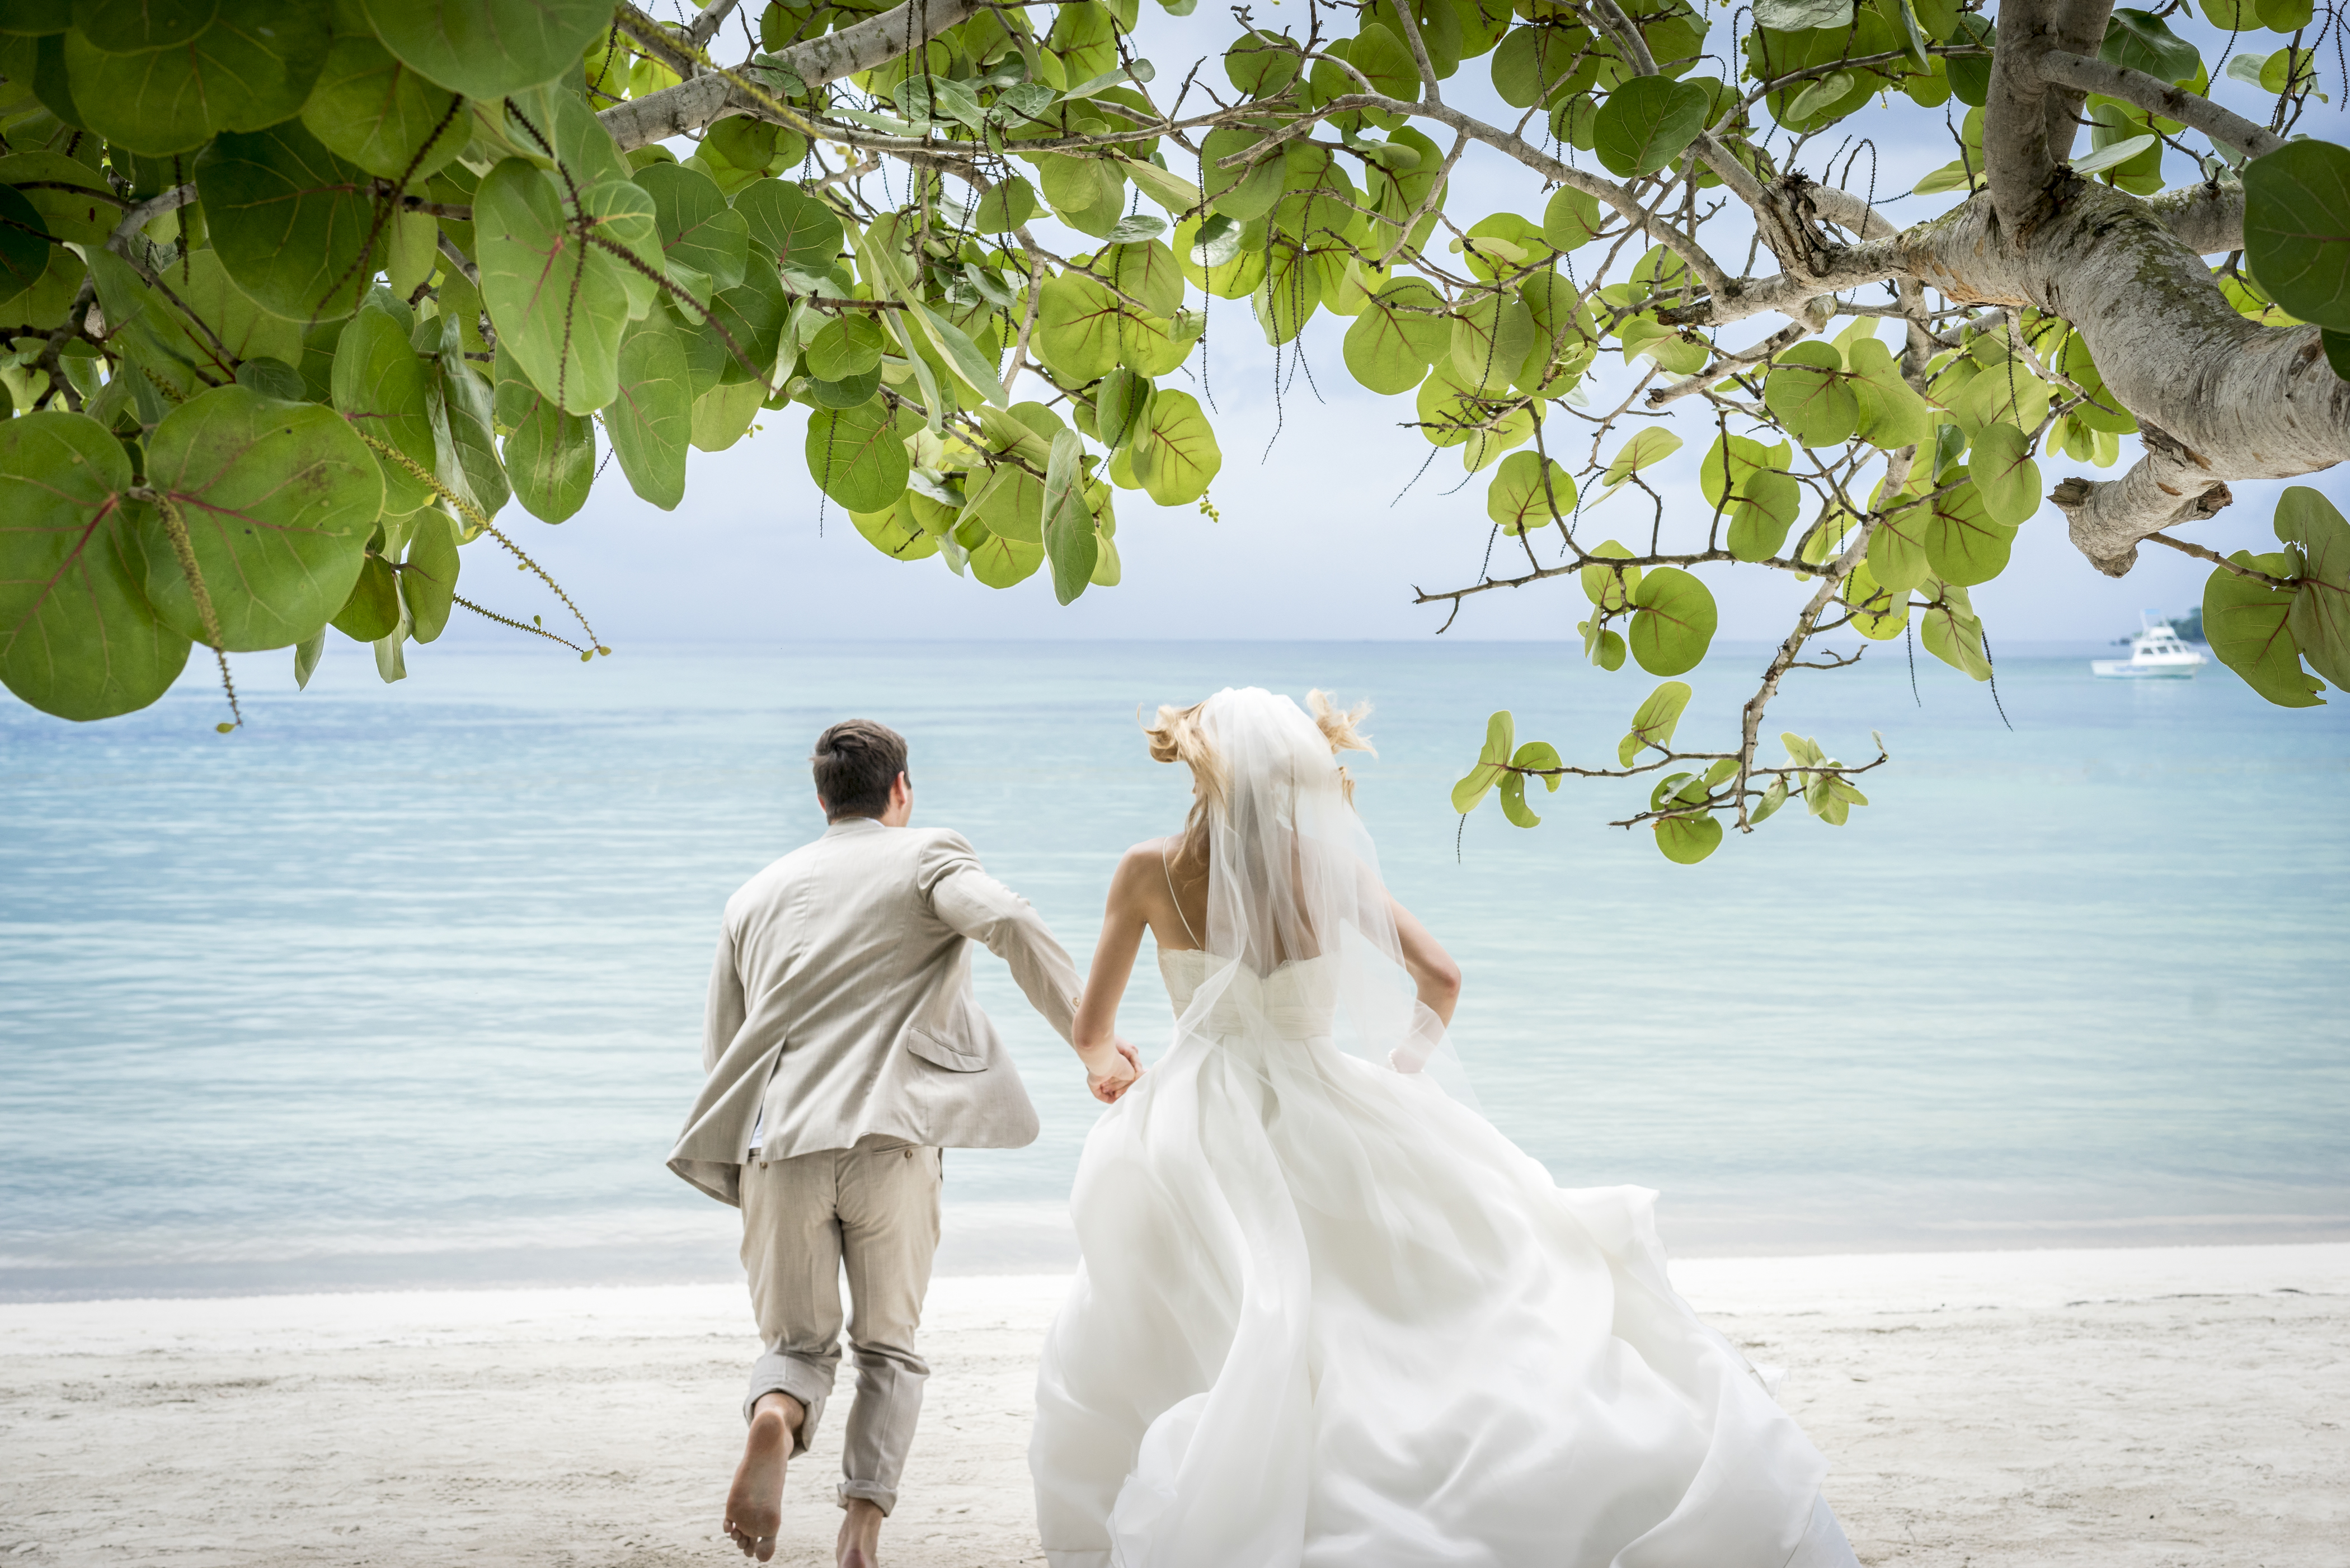 Travel Agency All-Inclusive Resort Couples Negril 14